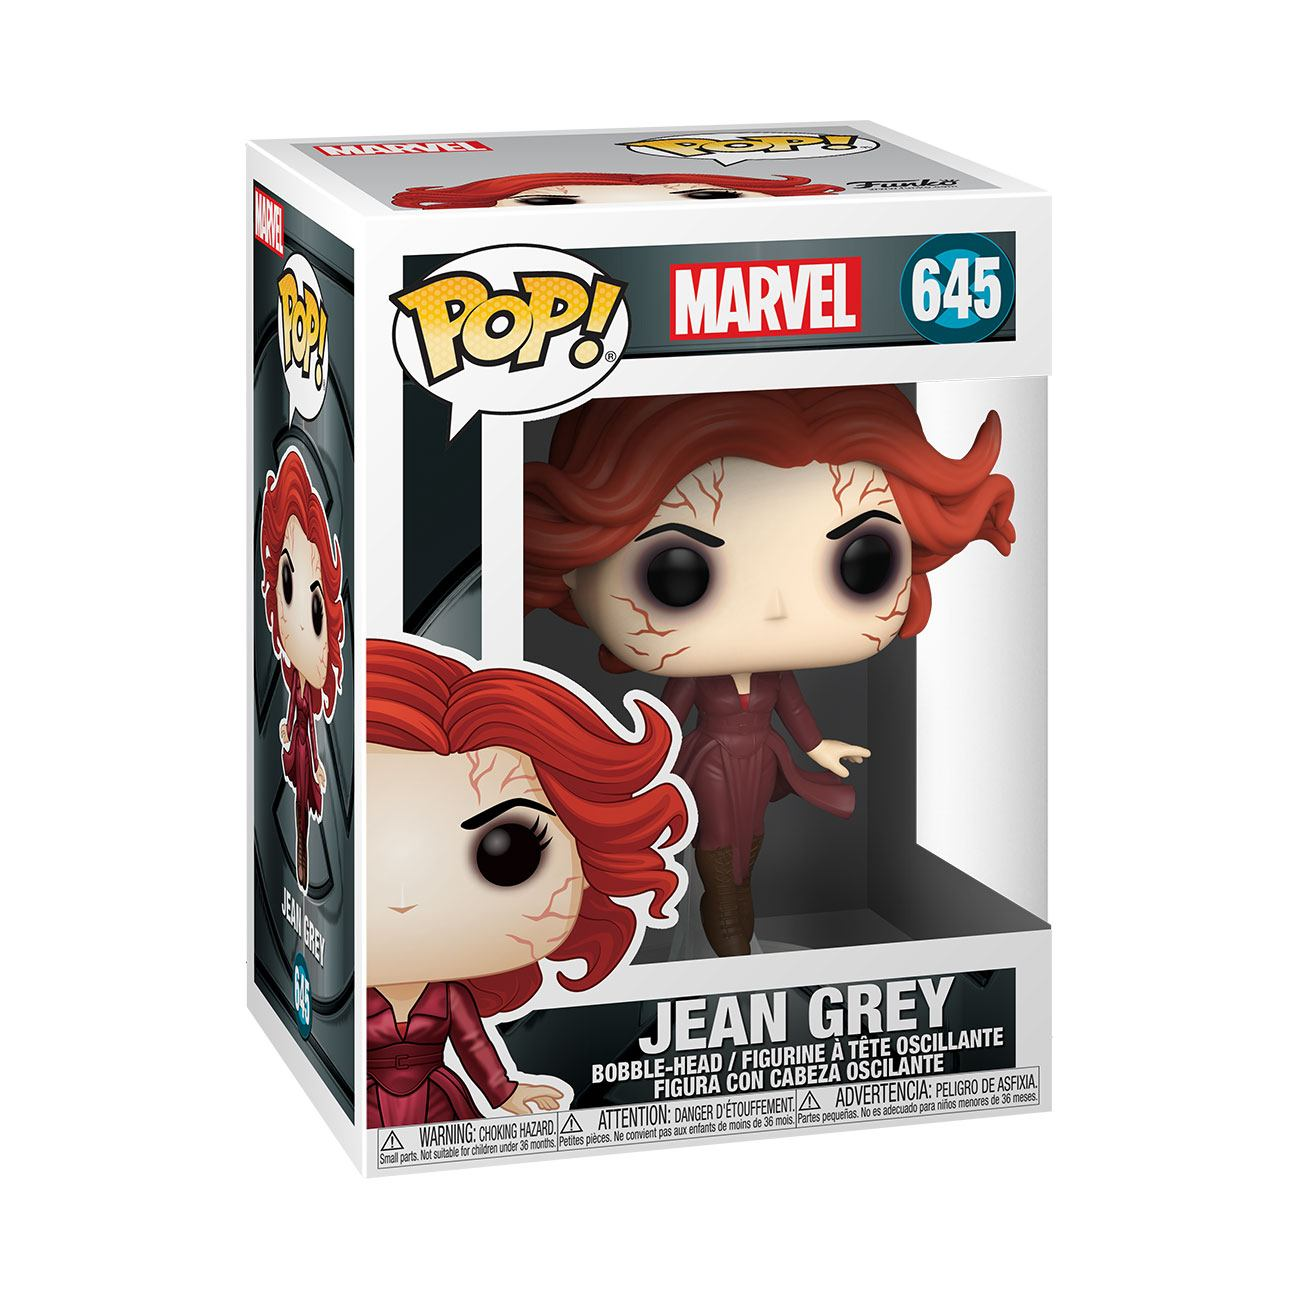 Marvel: X-Men 20th Anniversary - Jean Grey #645